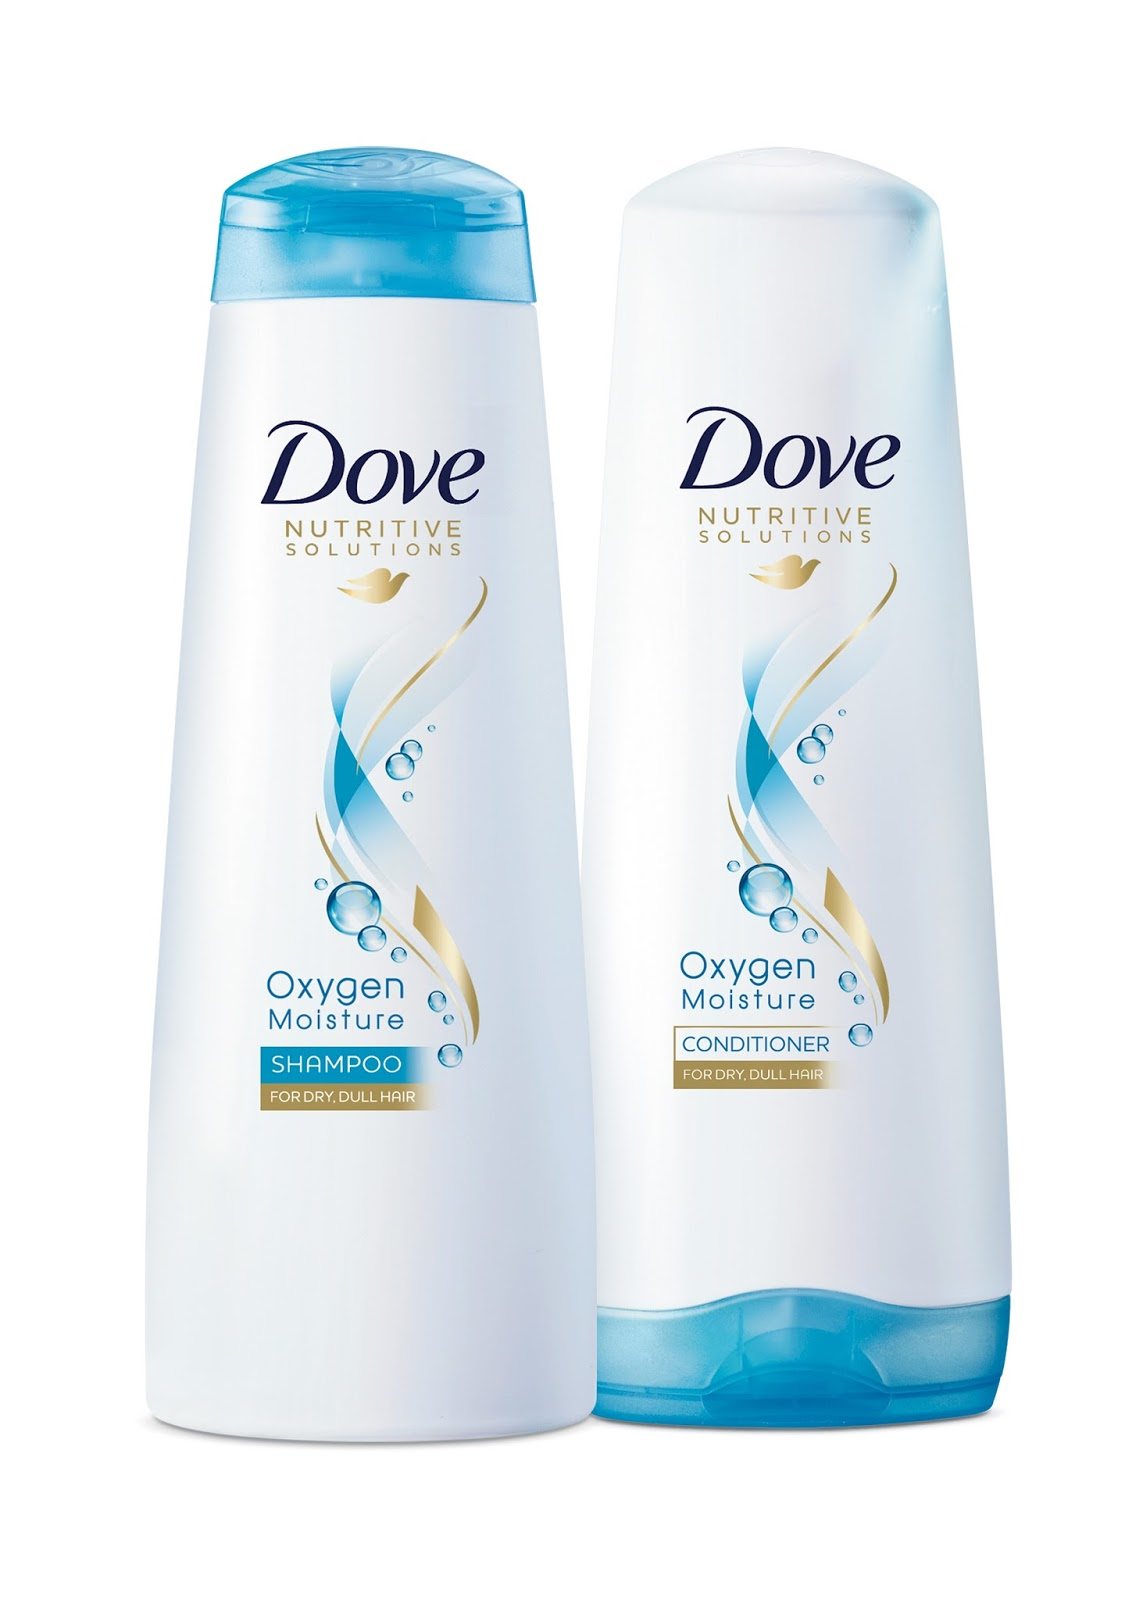 9 Best Dove Shampoos For Dry Hair Styles At Life